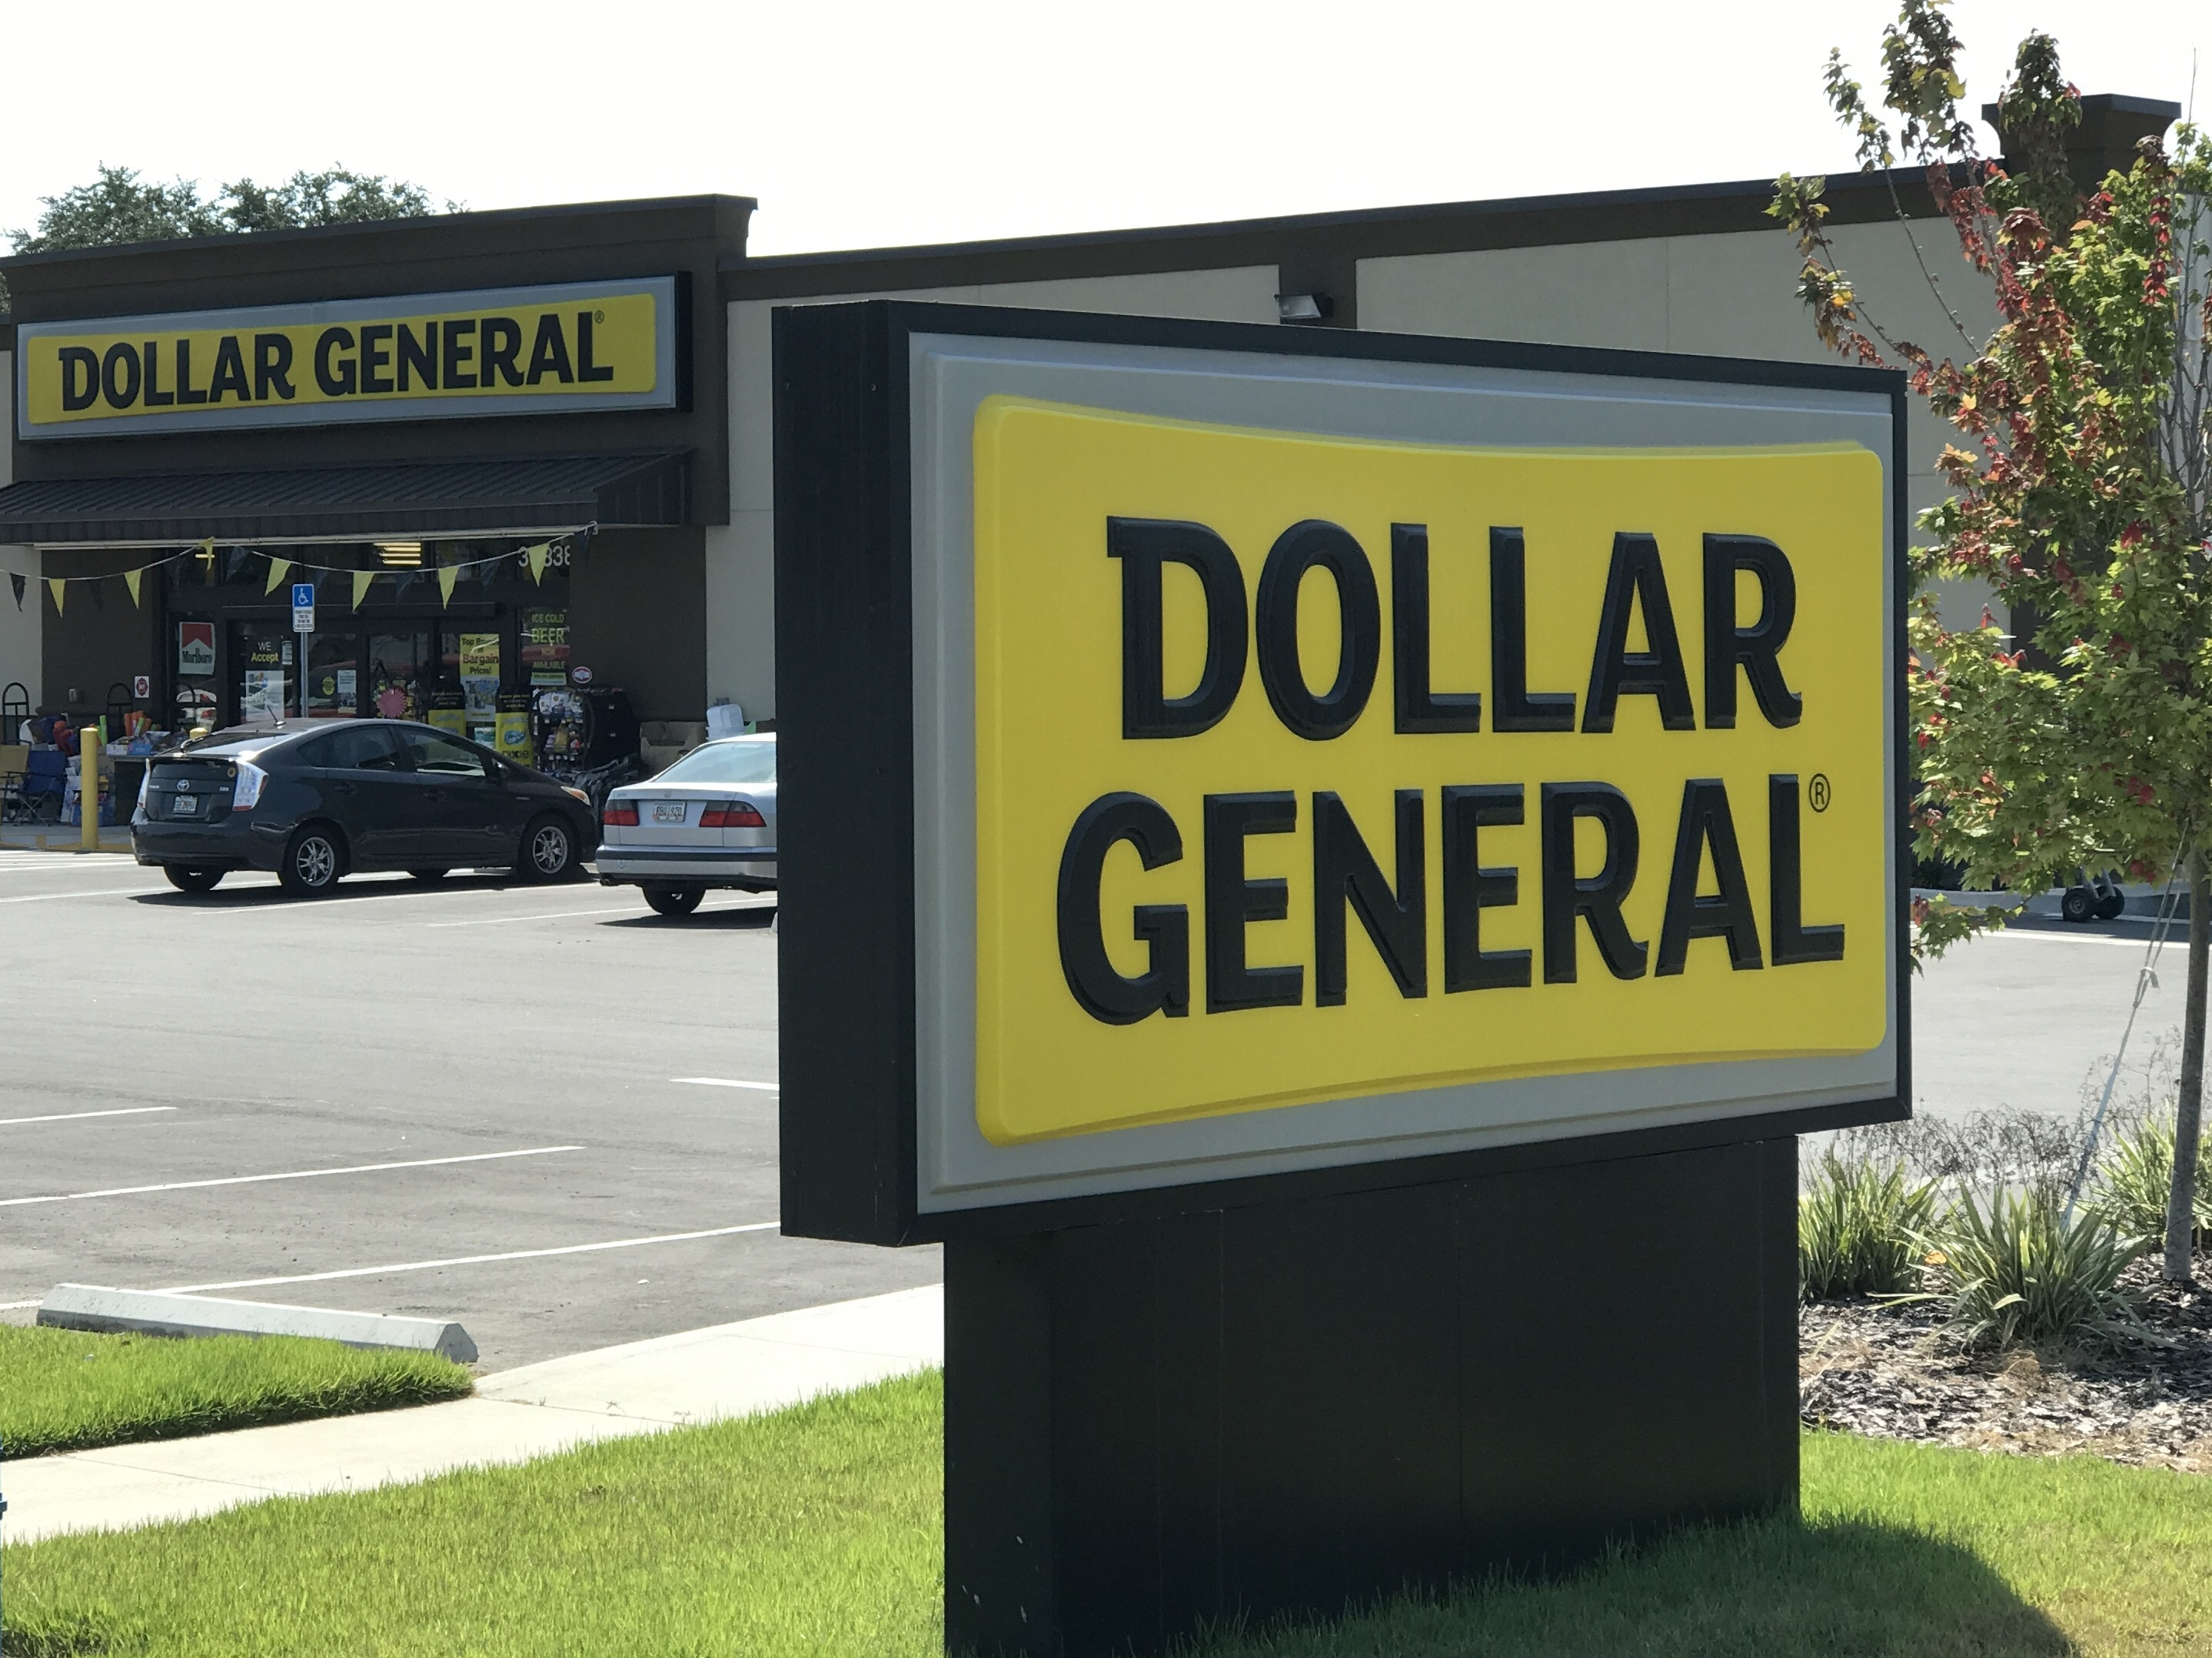 Dollar General's 2018 real estate plan calls for 2,000 projects including 900 store openings